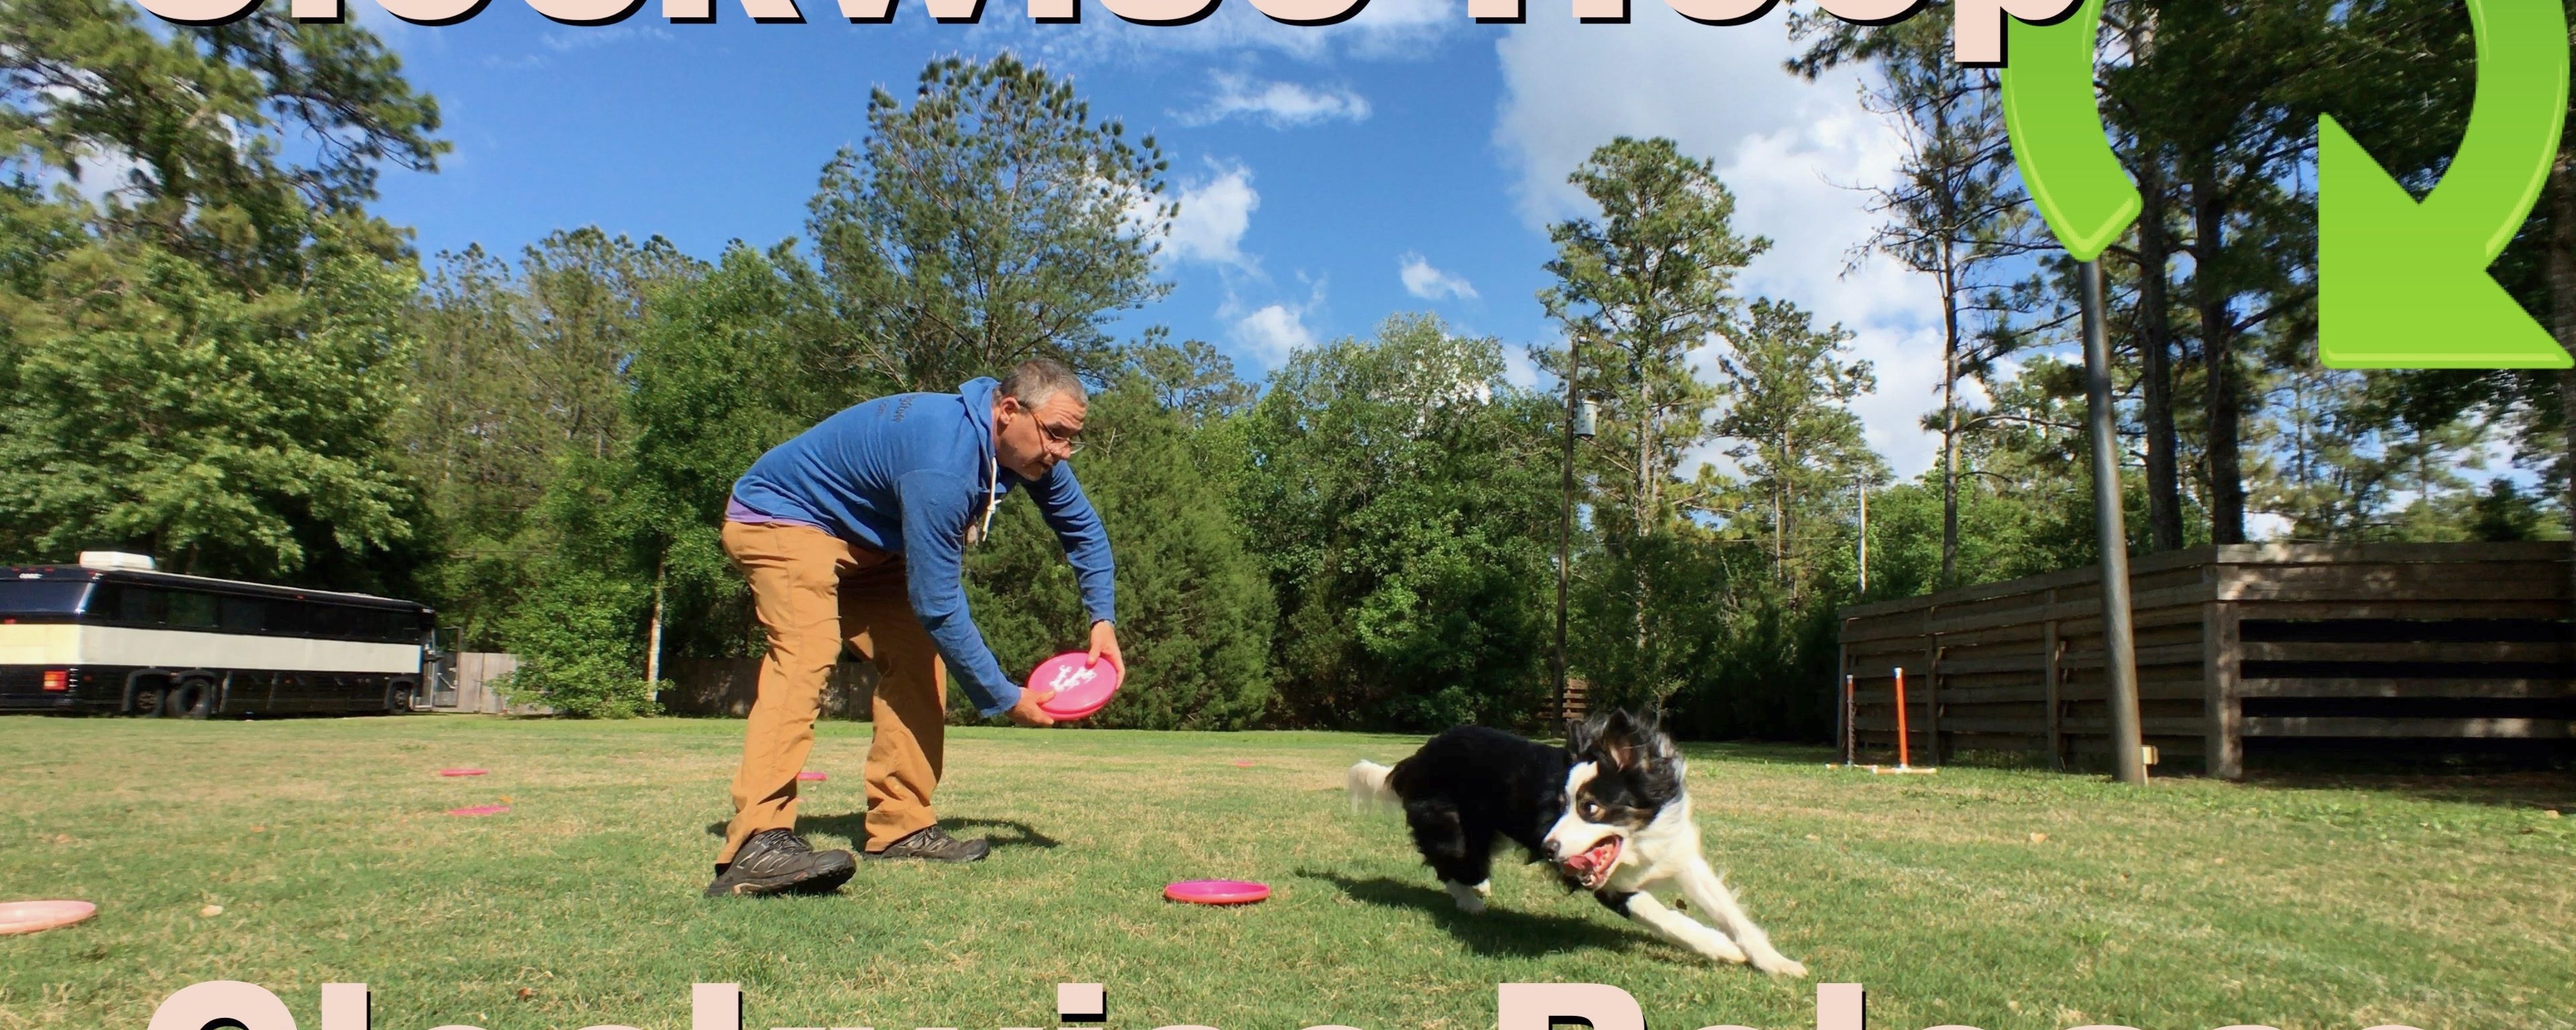 Patron's Choice: Routine Building | Disc Management for the Dog